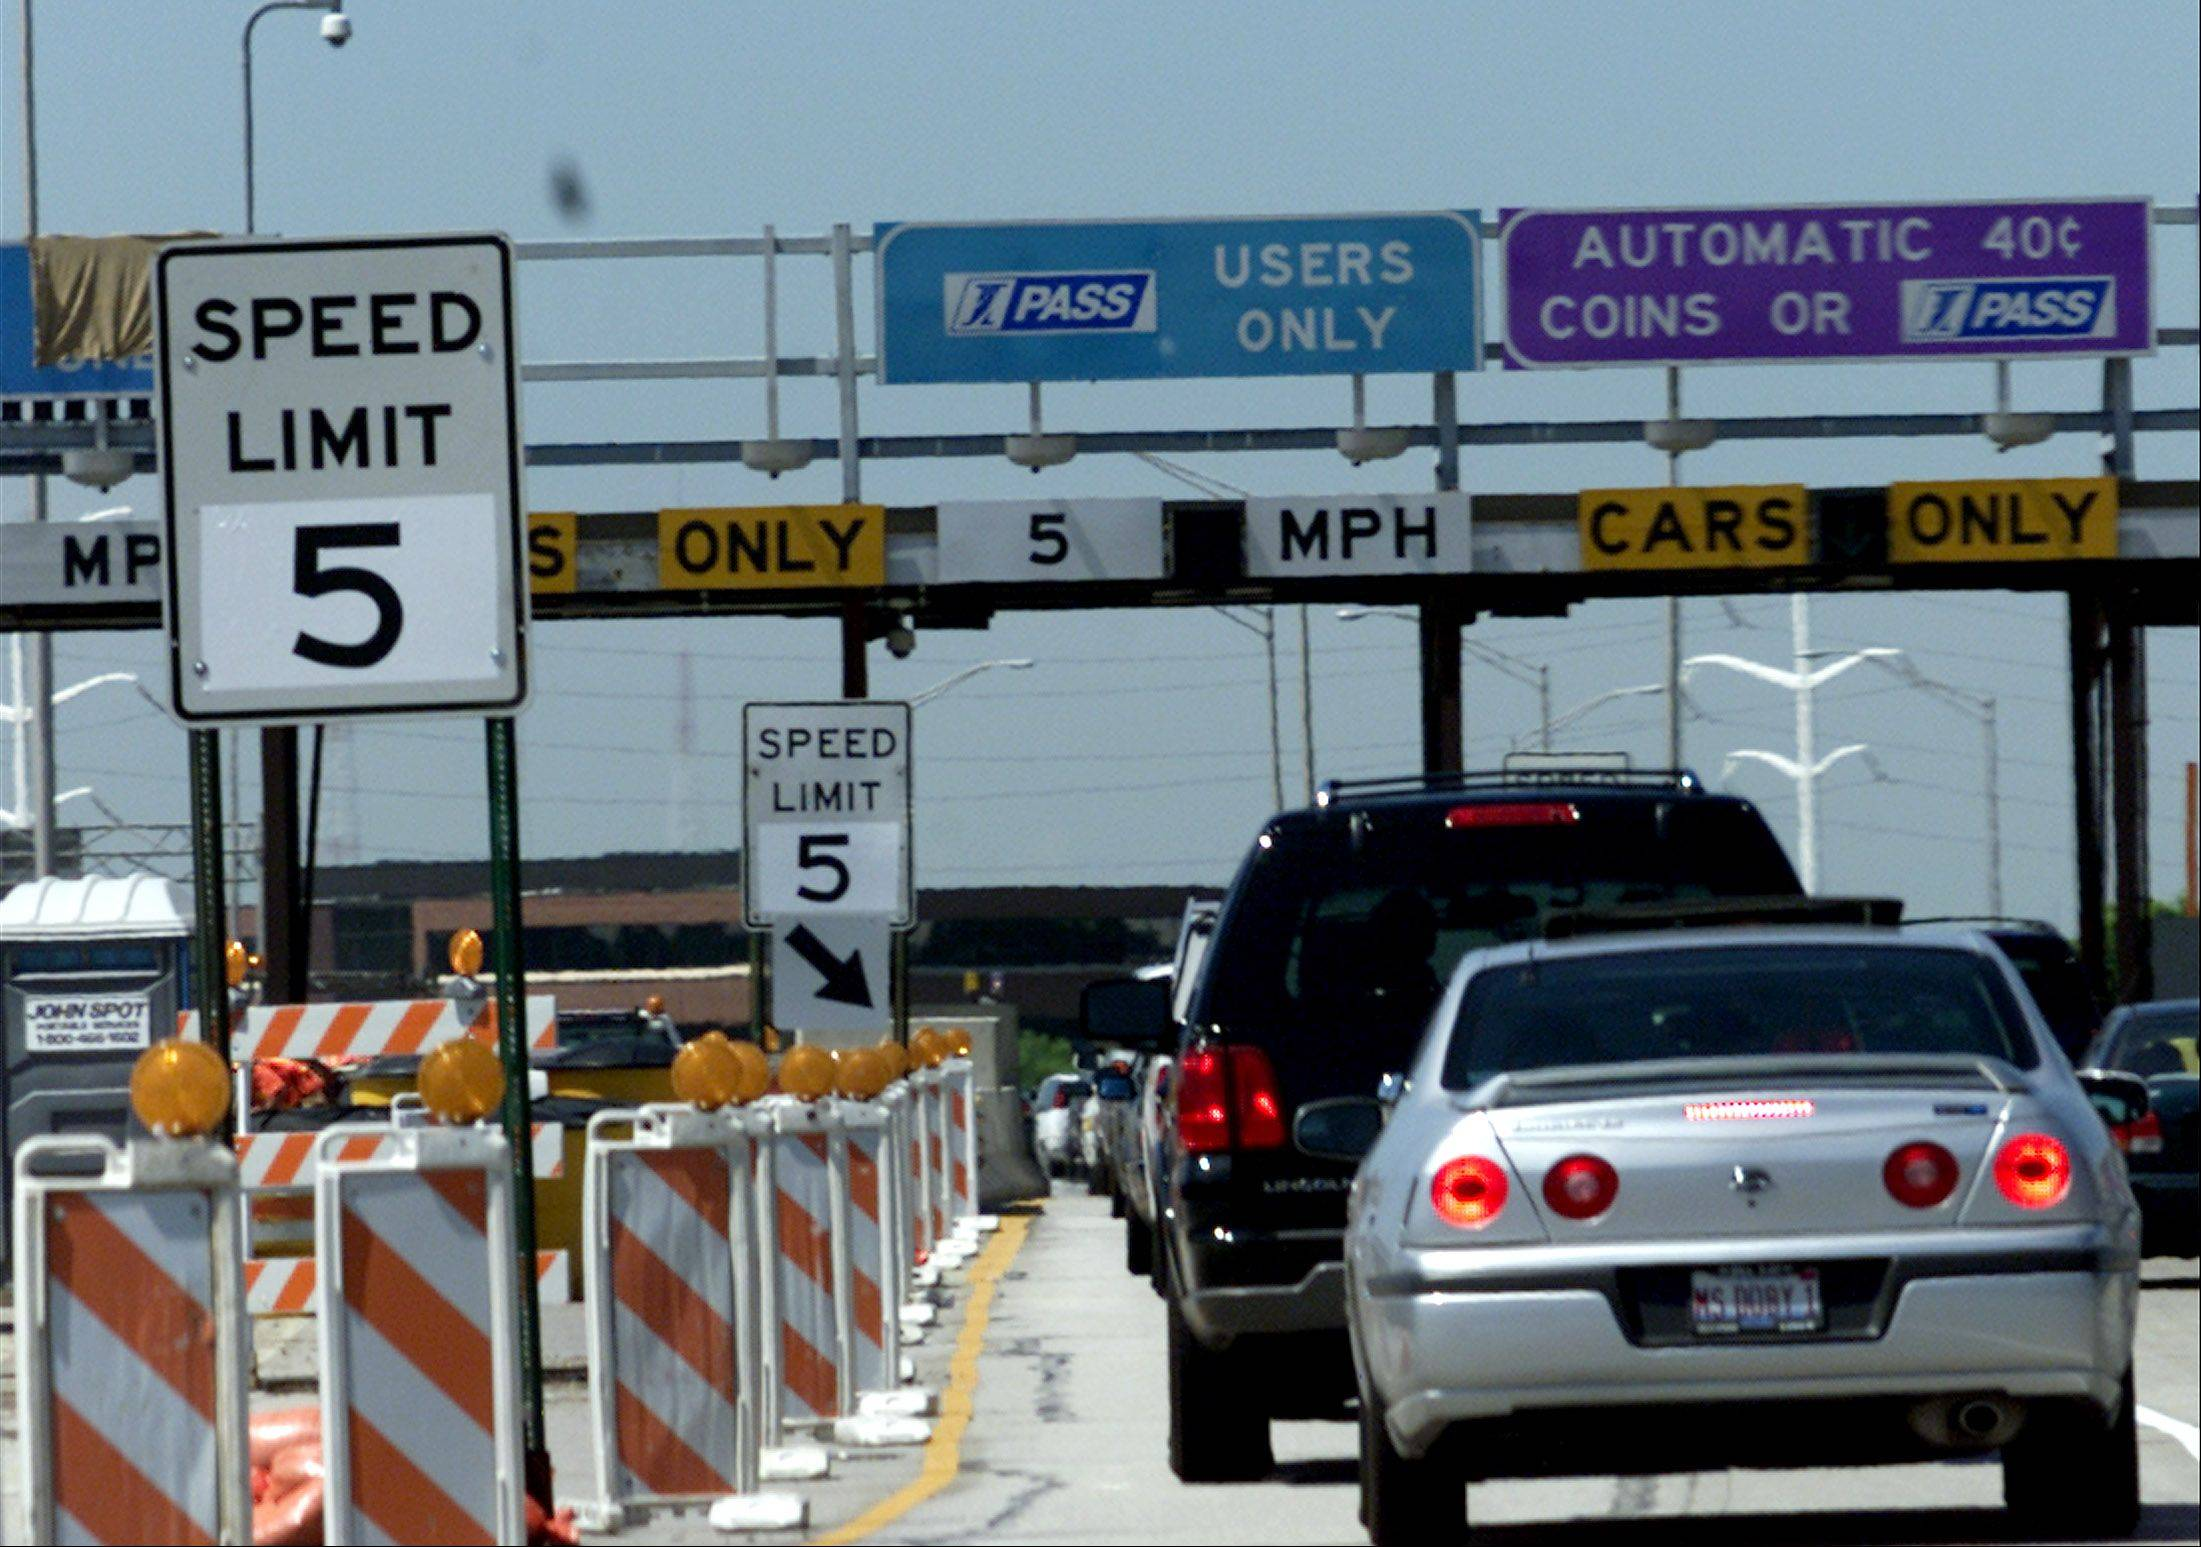 The Illinois tollway is considering a rate increase in order to pay for repairs, maintenance and $4 billion of new projects. Under the plan, on which public hearings begin this week, tolls at plazas would go up between 35 and 70 cents.